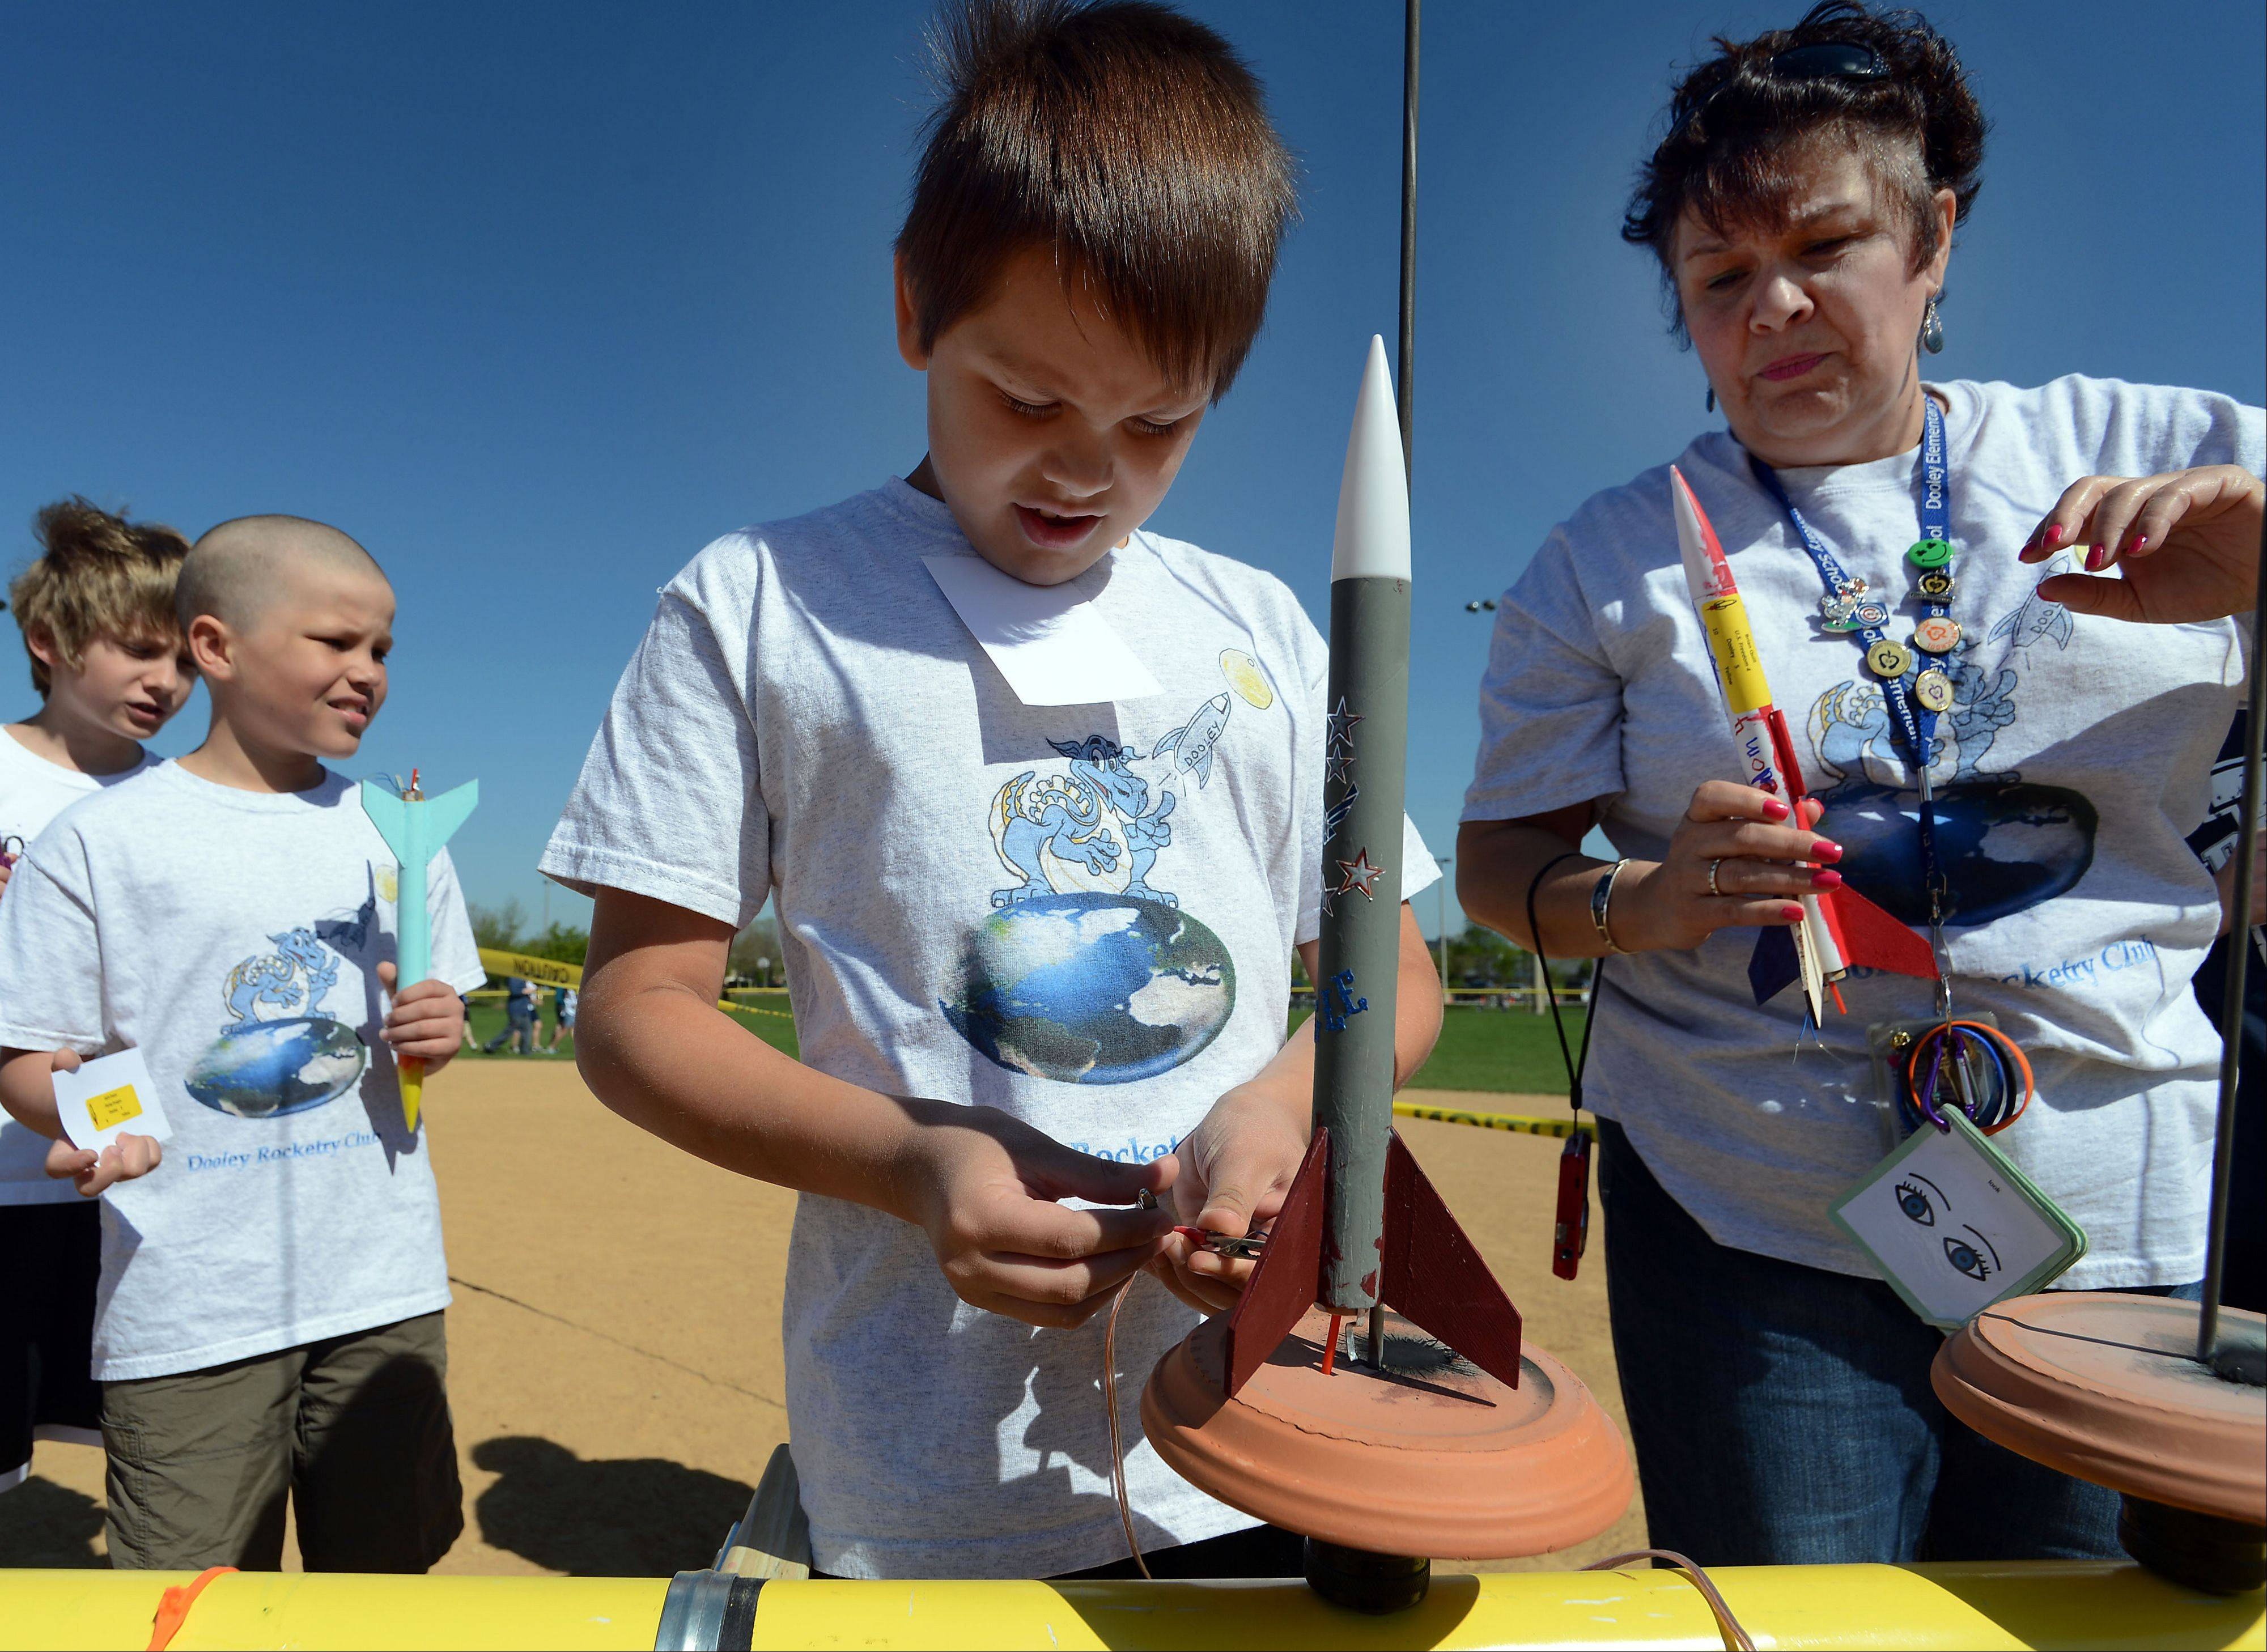 Donald McCormick, 10, a fourth grader at Thomas Dooley Elementary School in Schaumburg, hooks up his rocket called the Red Eagle at Olympic Park in Schaumburg Tuesday. His was one of 450 rockets that took to the sky as part of Schaumburg Township Elementary District 54�s rocket launch day. Next to him is Joann Delmedico, who was the rocketeer club facilitator on site.